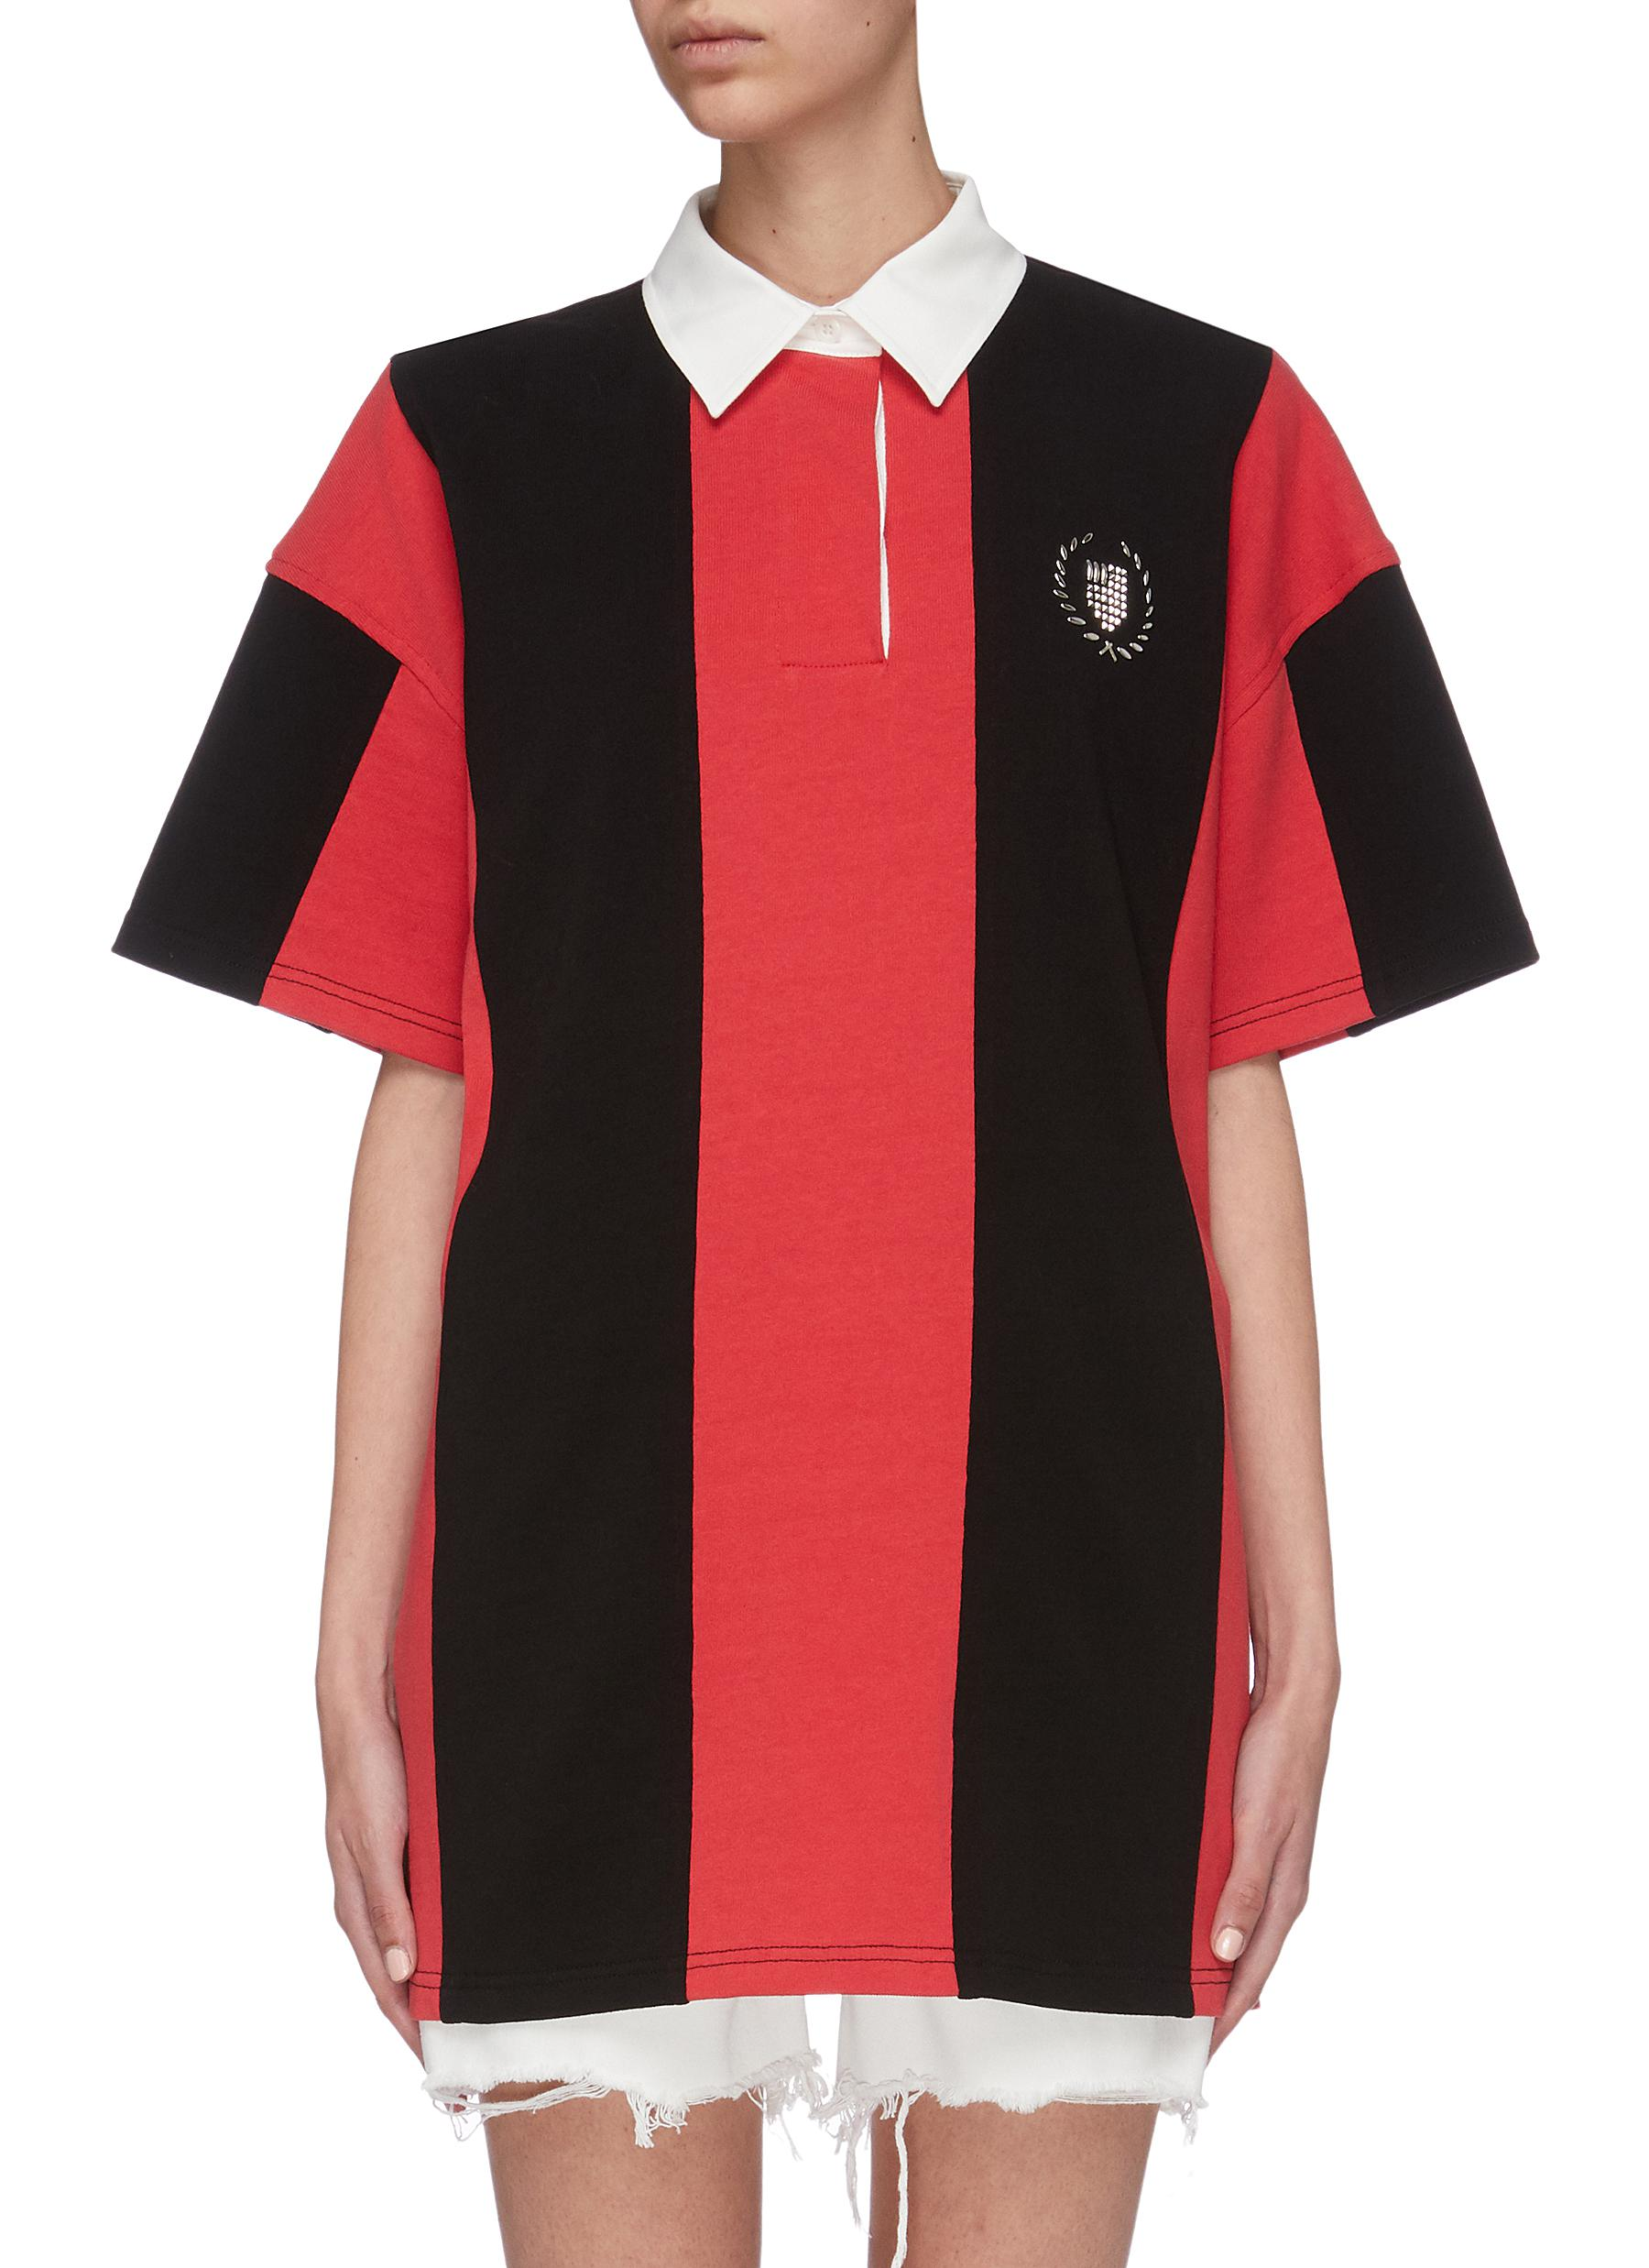 Rugby stripe oversized polo shirt by Alexanderwang